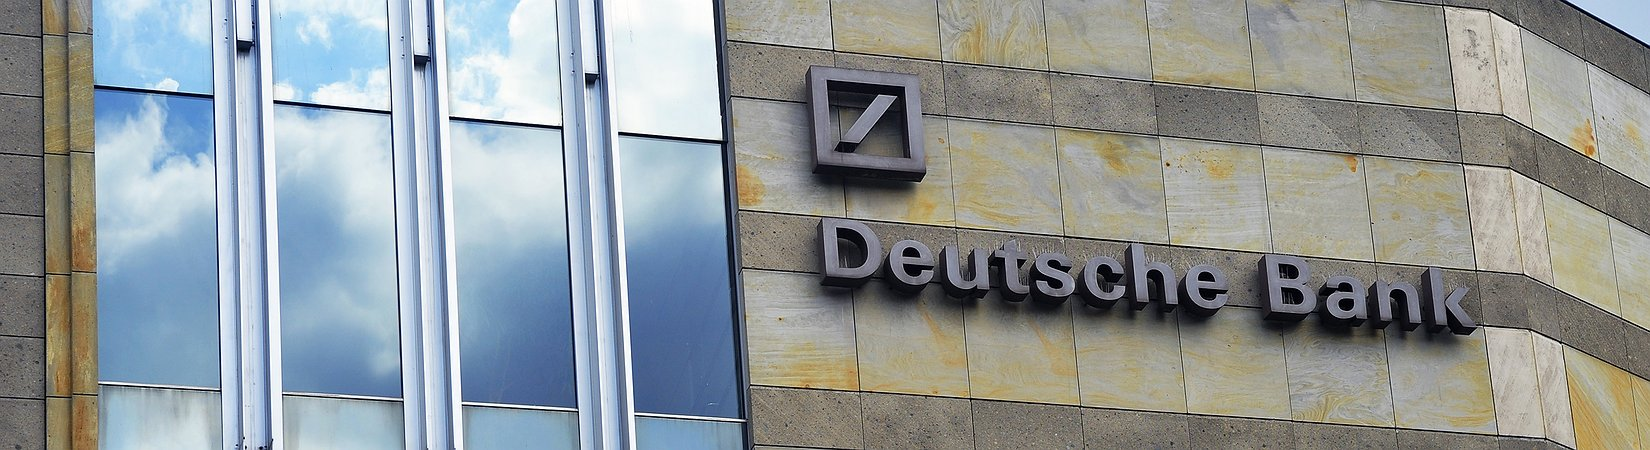 La Fed multa Deutsche Bank per 41 milioni di dollari